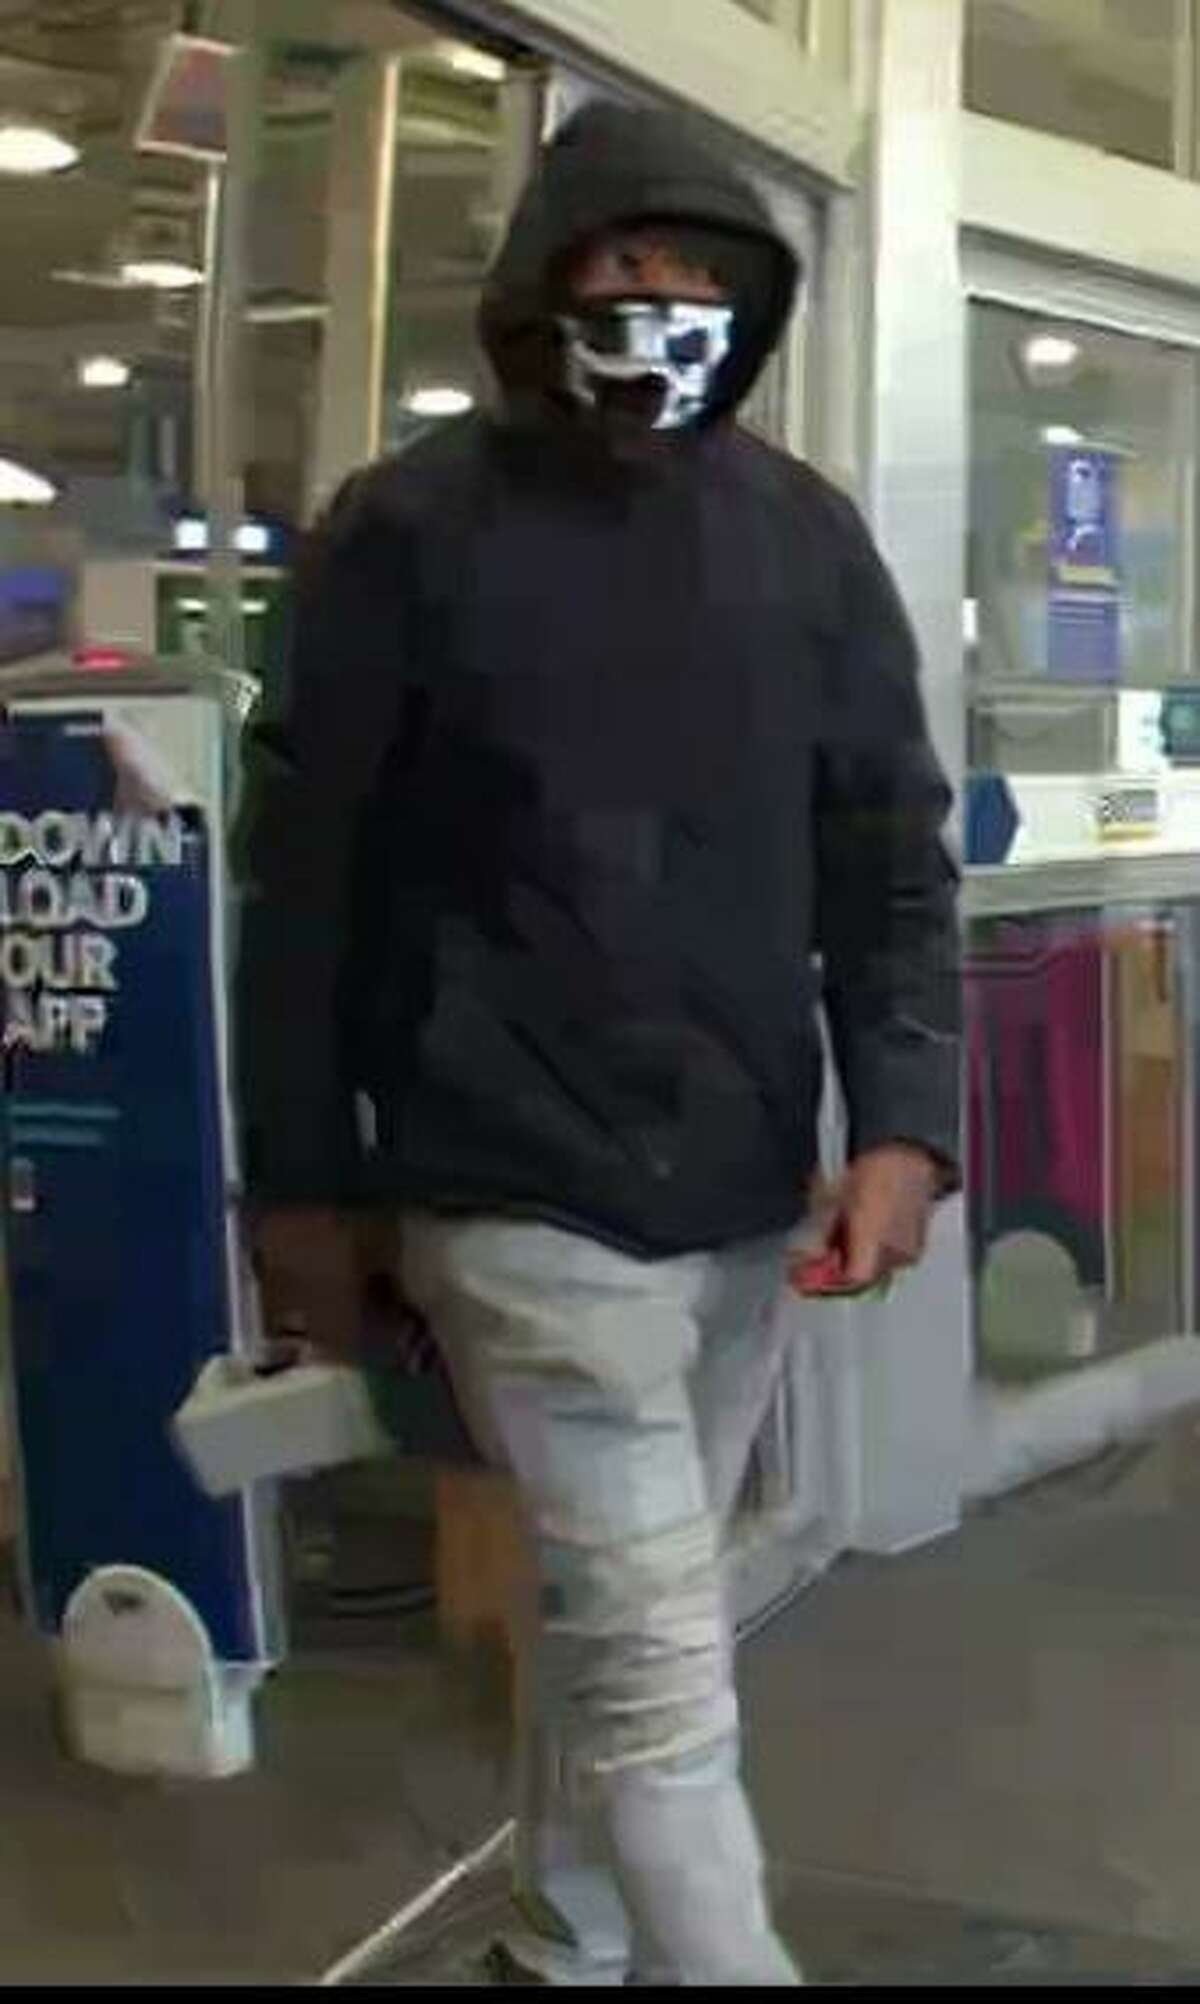 Police said the man pictured is their prime suspect in Tuesday's theft.